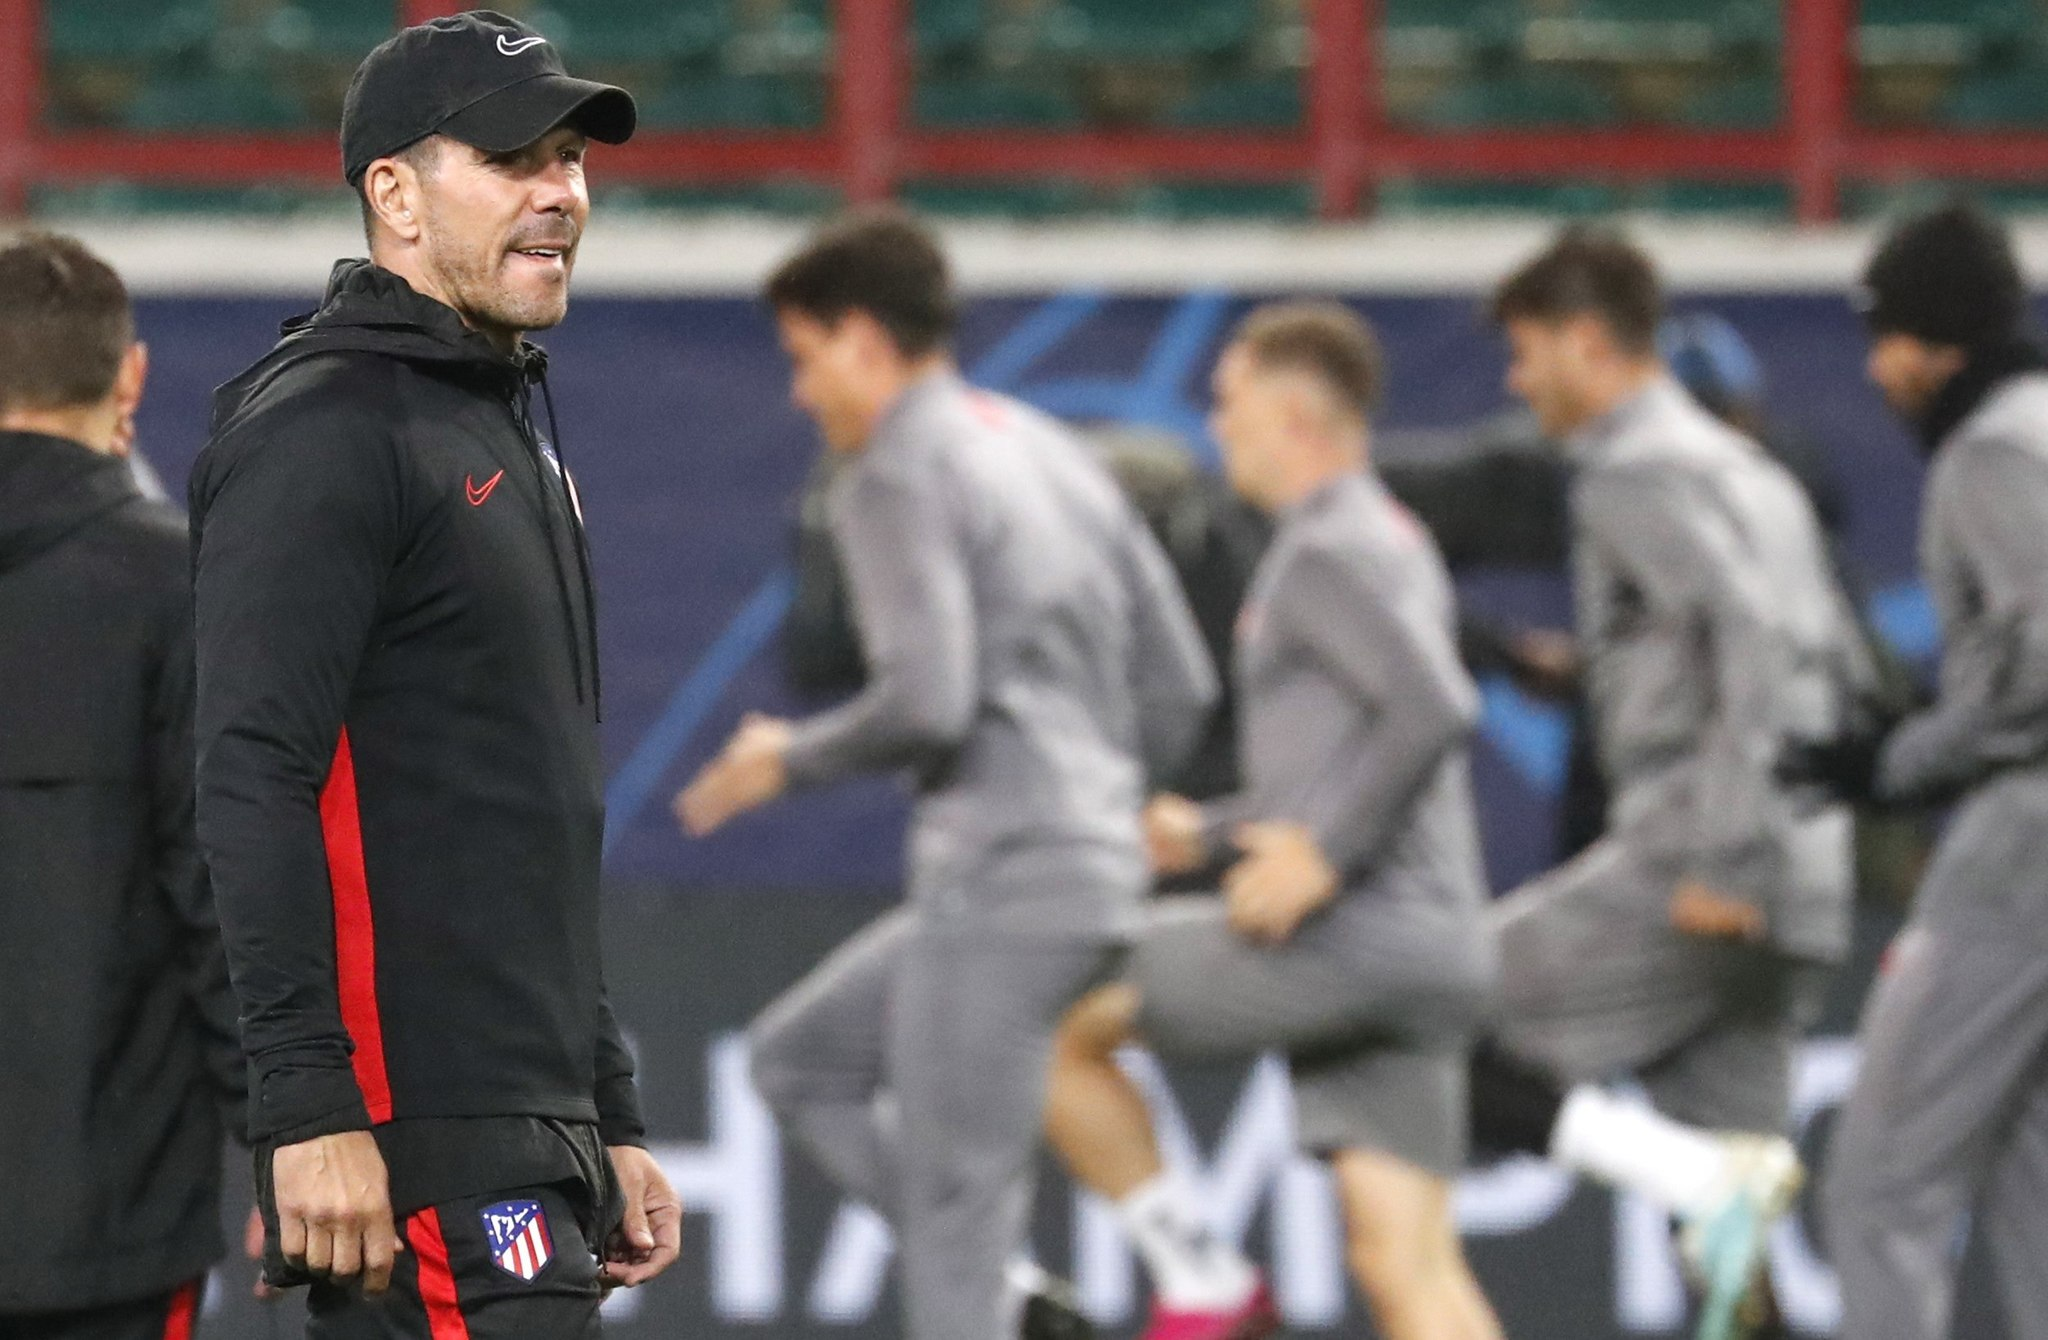 Moscow (Russian Federation), 30/09/2019.- Atletico Madrids head coach Diego <HIT>Simeone</HIT> takes part in a training session in Moscow, Russia 30 September 2019. Atletico Madrid will face Lokomotiv Moscow in a UEFA Champions League group stage match on 01 October. (Liga de Campeones, Rusia, Moscú) EFE/EPA/MAXIM SHIPENKOV